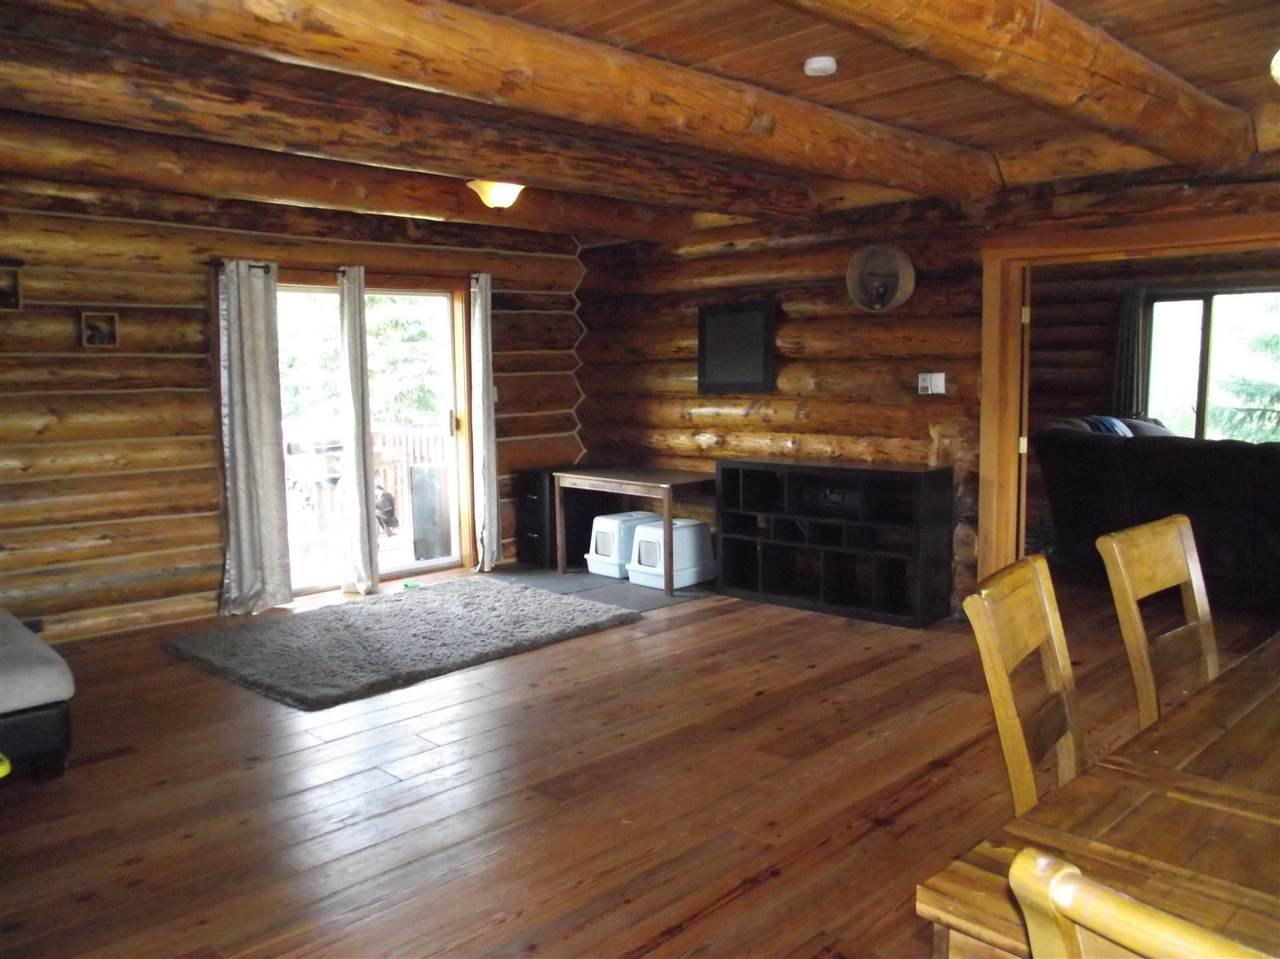 """Photo 5: Photos: 5615 COURVAL Road in Prince George: Buckhorn House for sale in """"BUCKHORN"""" (PG Rural South (Zone 78))  : MLS®# R2374346"""